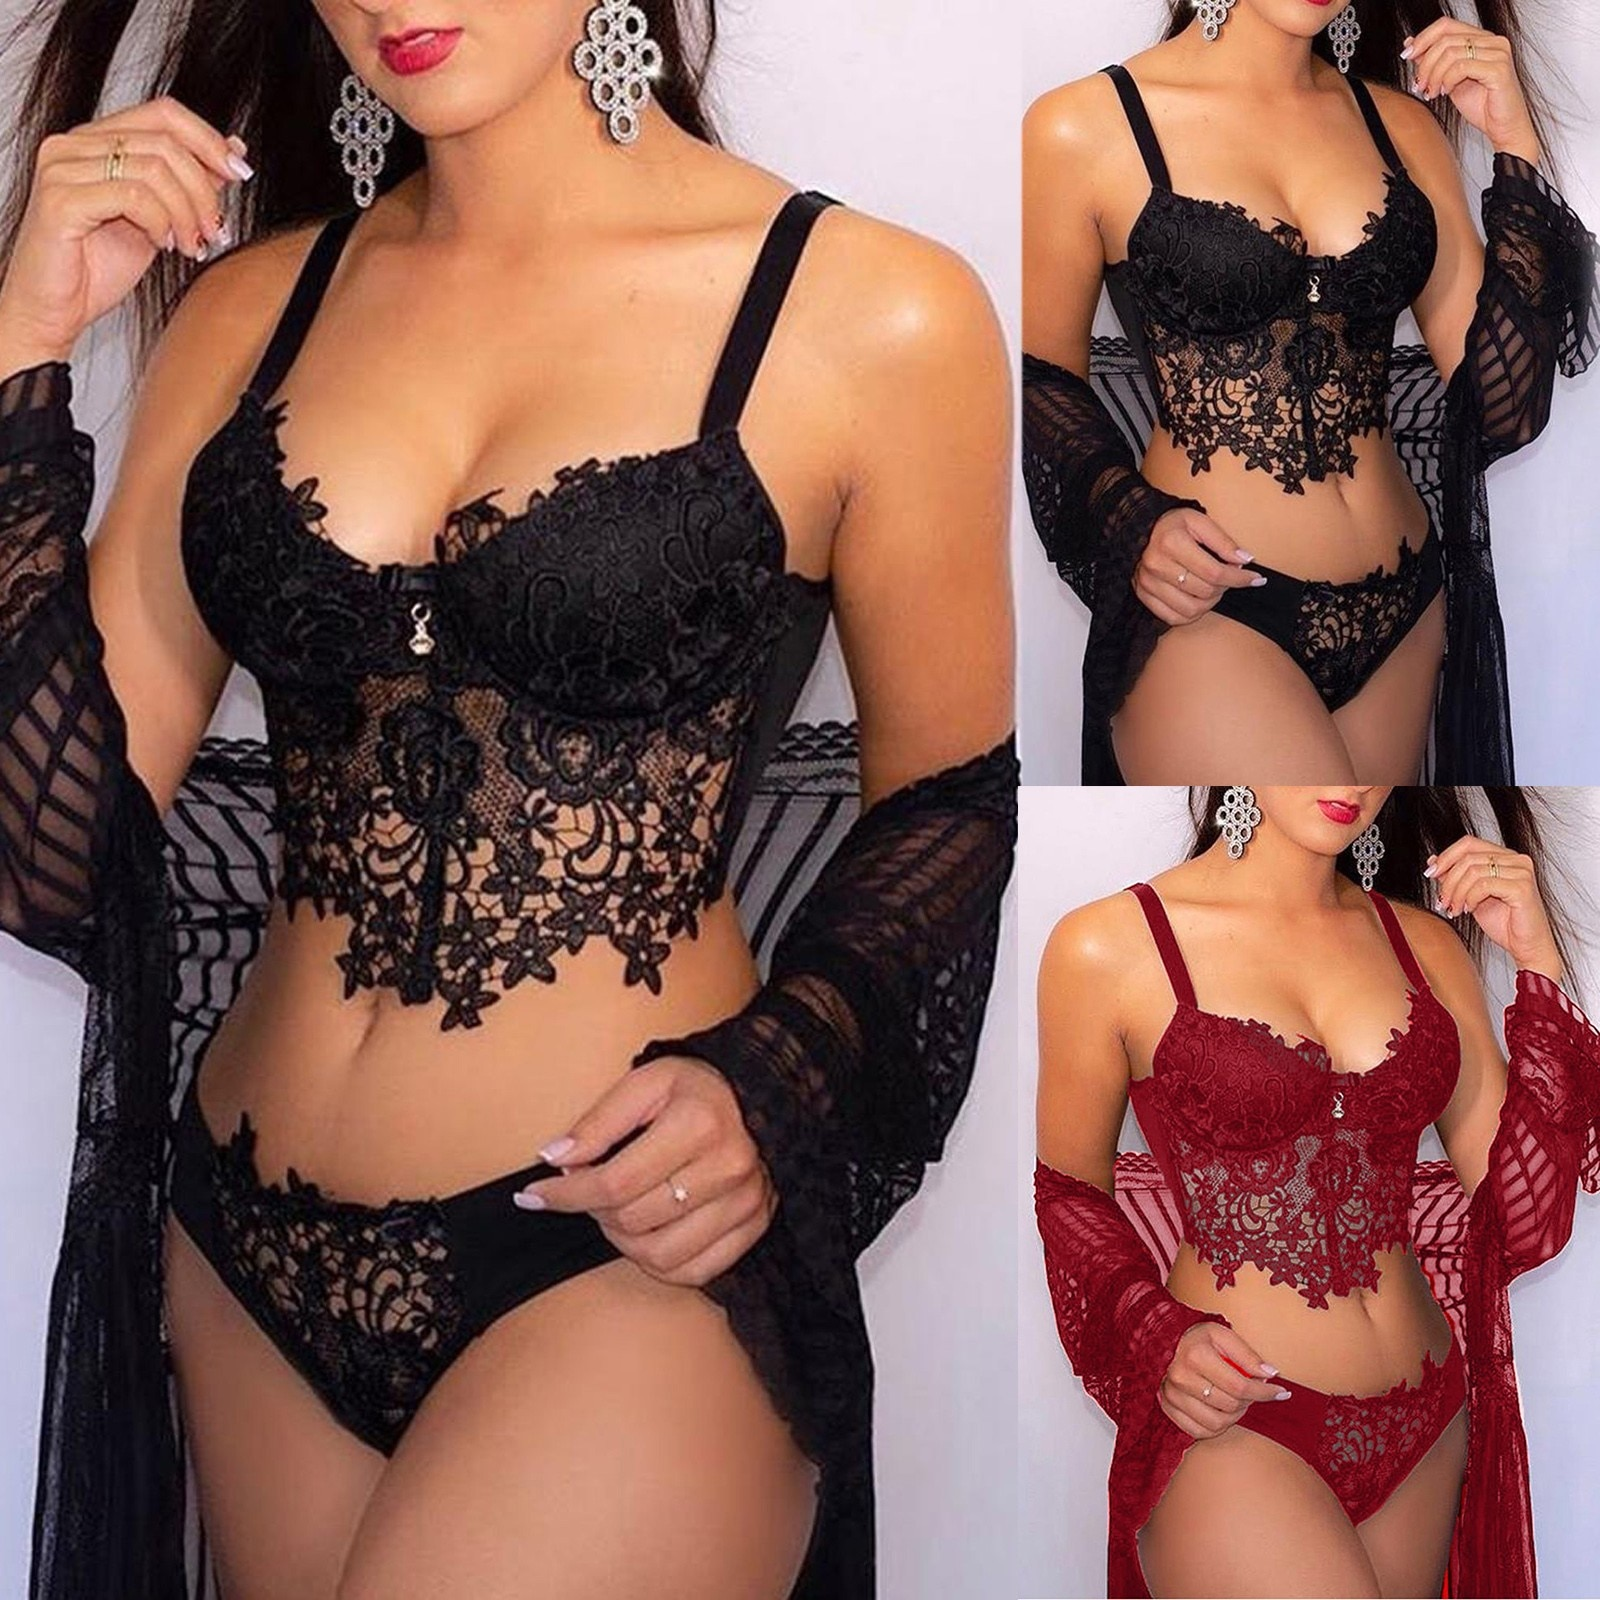 Sexy Women Embroidery Lingerie Plus Size Lace Collar Wireless Bra Sexy Lingerie Thong Set Hot Erotic Sleepwear Sex Costumes